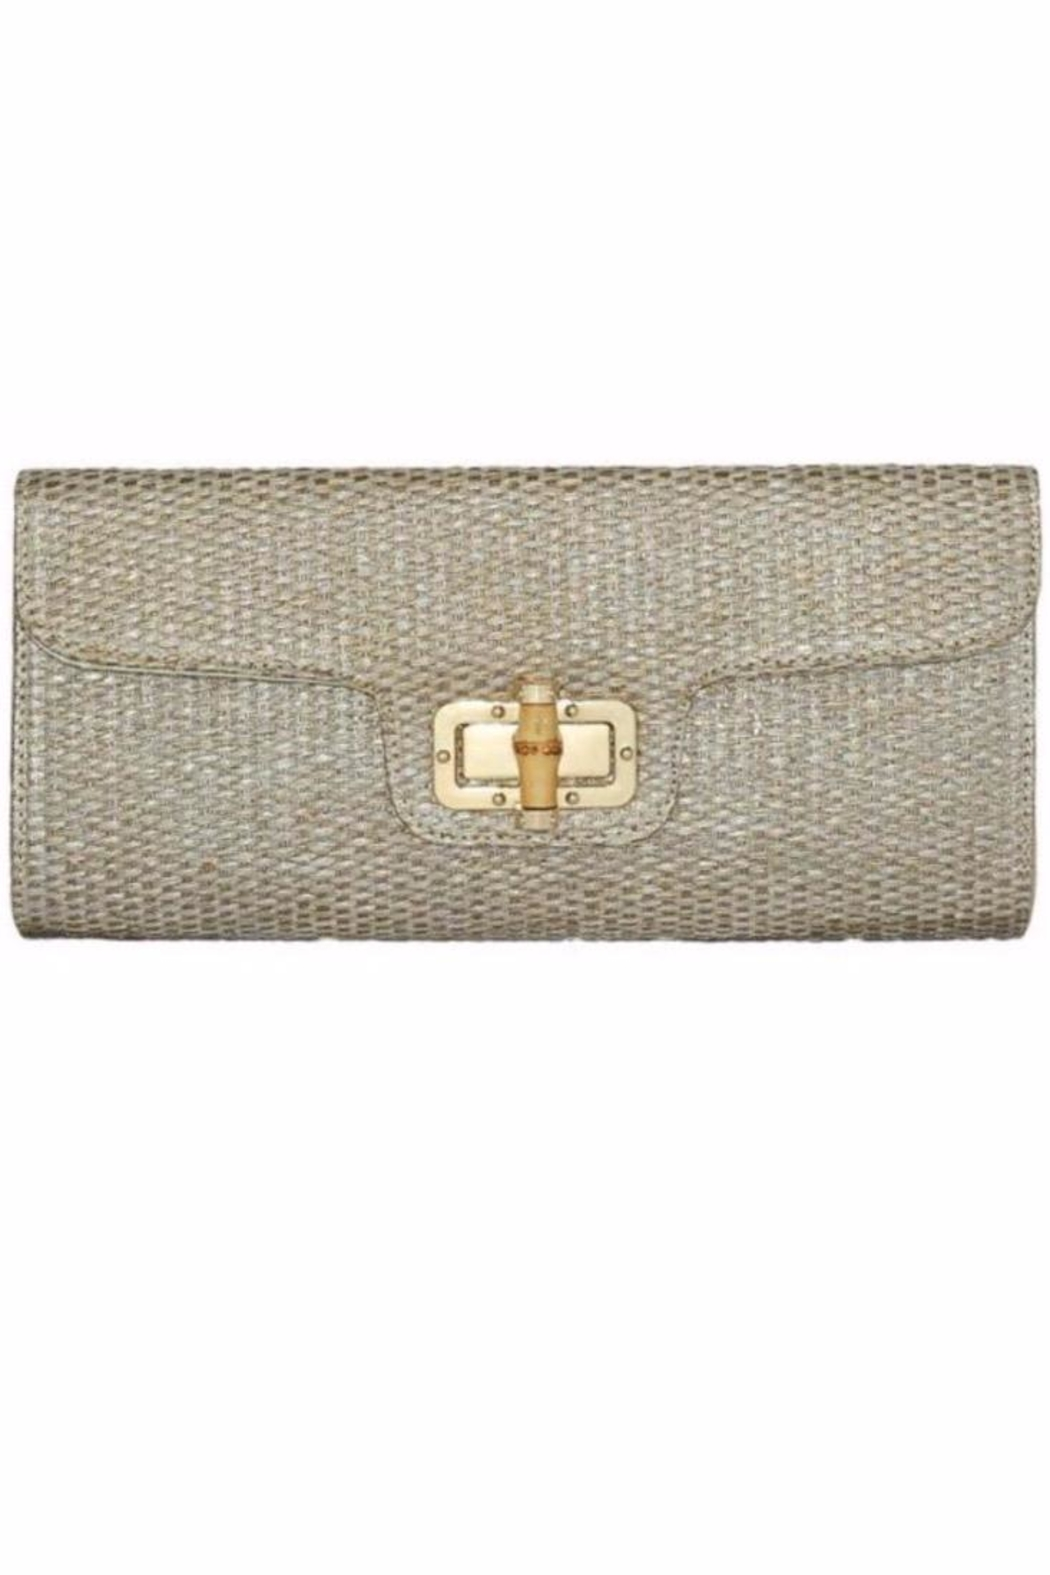 Allie & Chica Gold Bamboo Clutch - Main Image